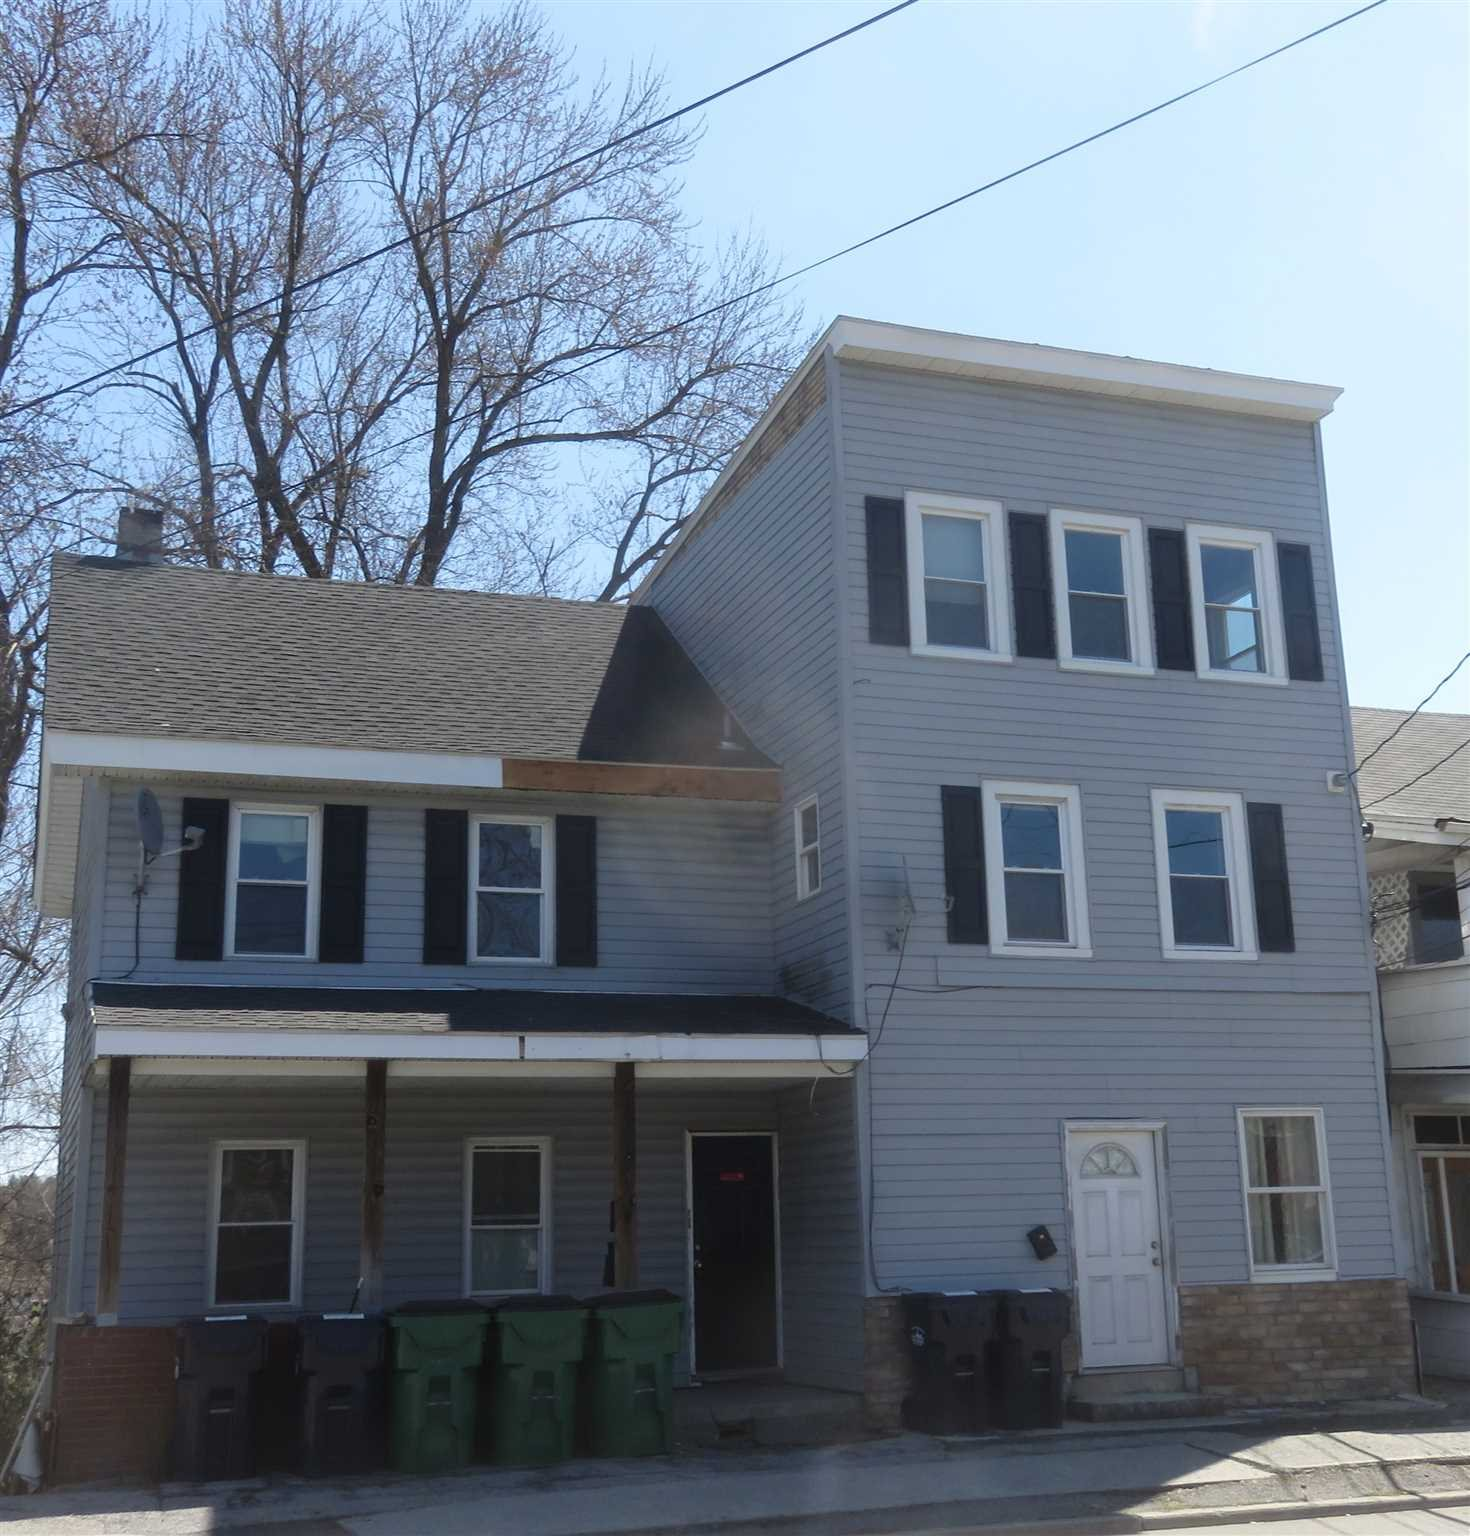 Single Family Home for Sale at 2748 MAIN Street 2748 MAIN Street Wappingers Falls, New York 12590 United States